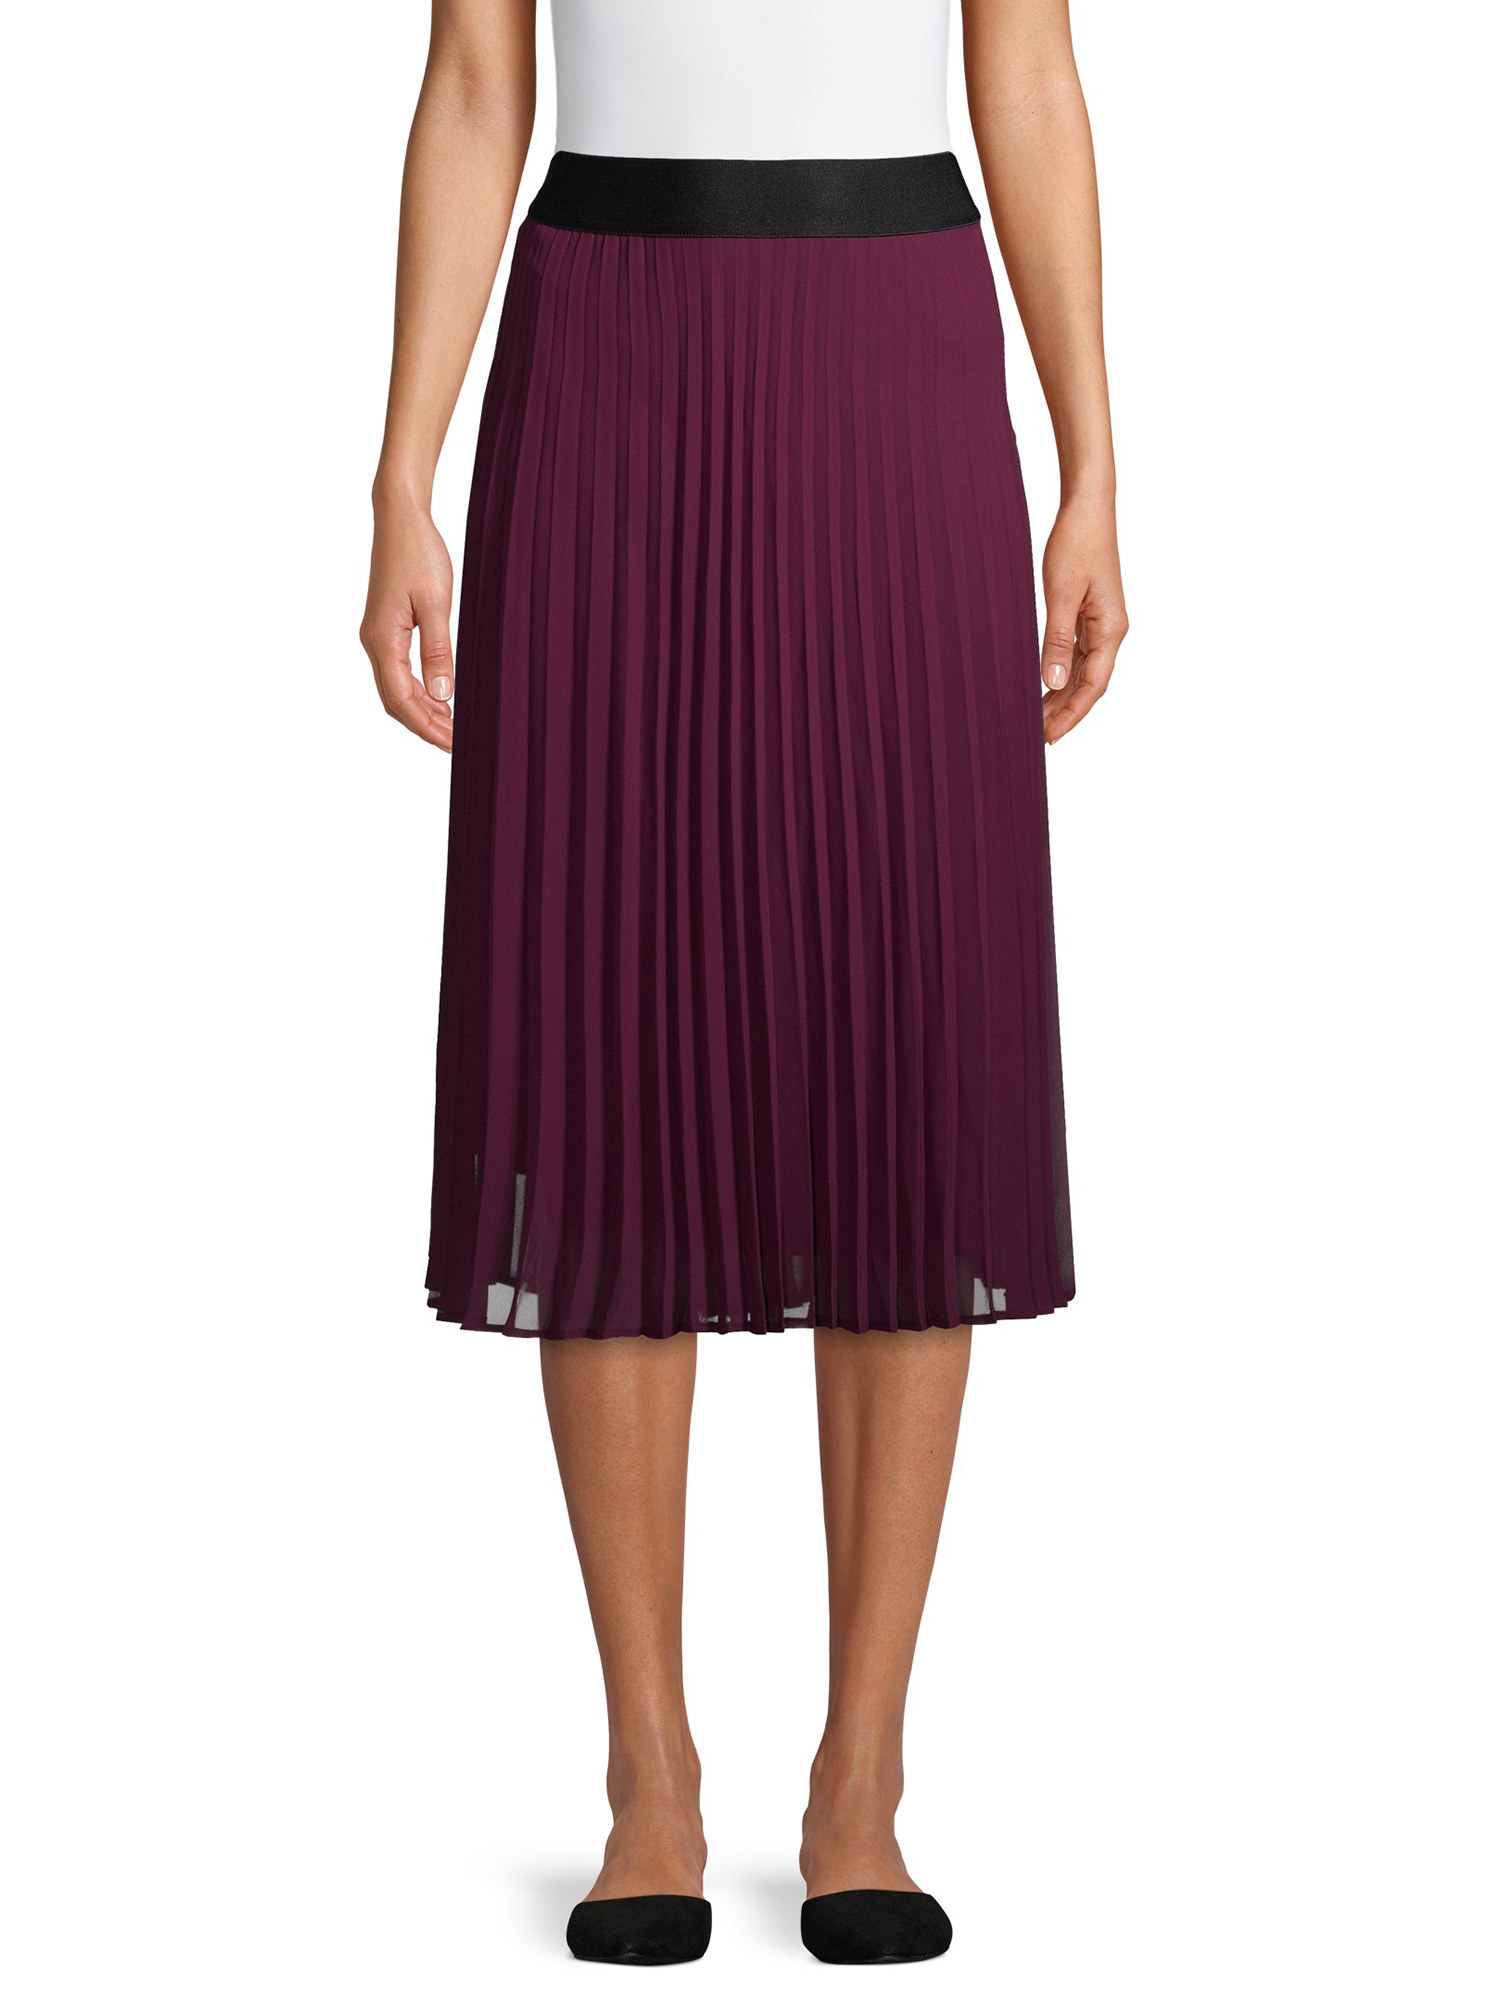 model wearing the burgundy pleated midi skirt